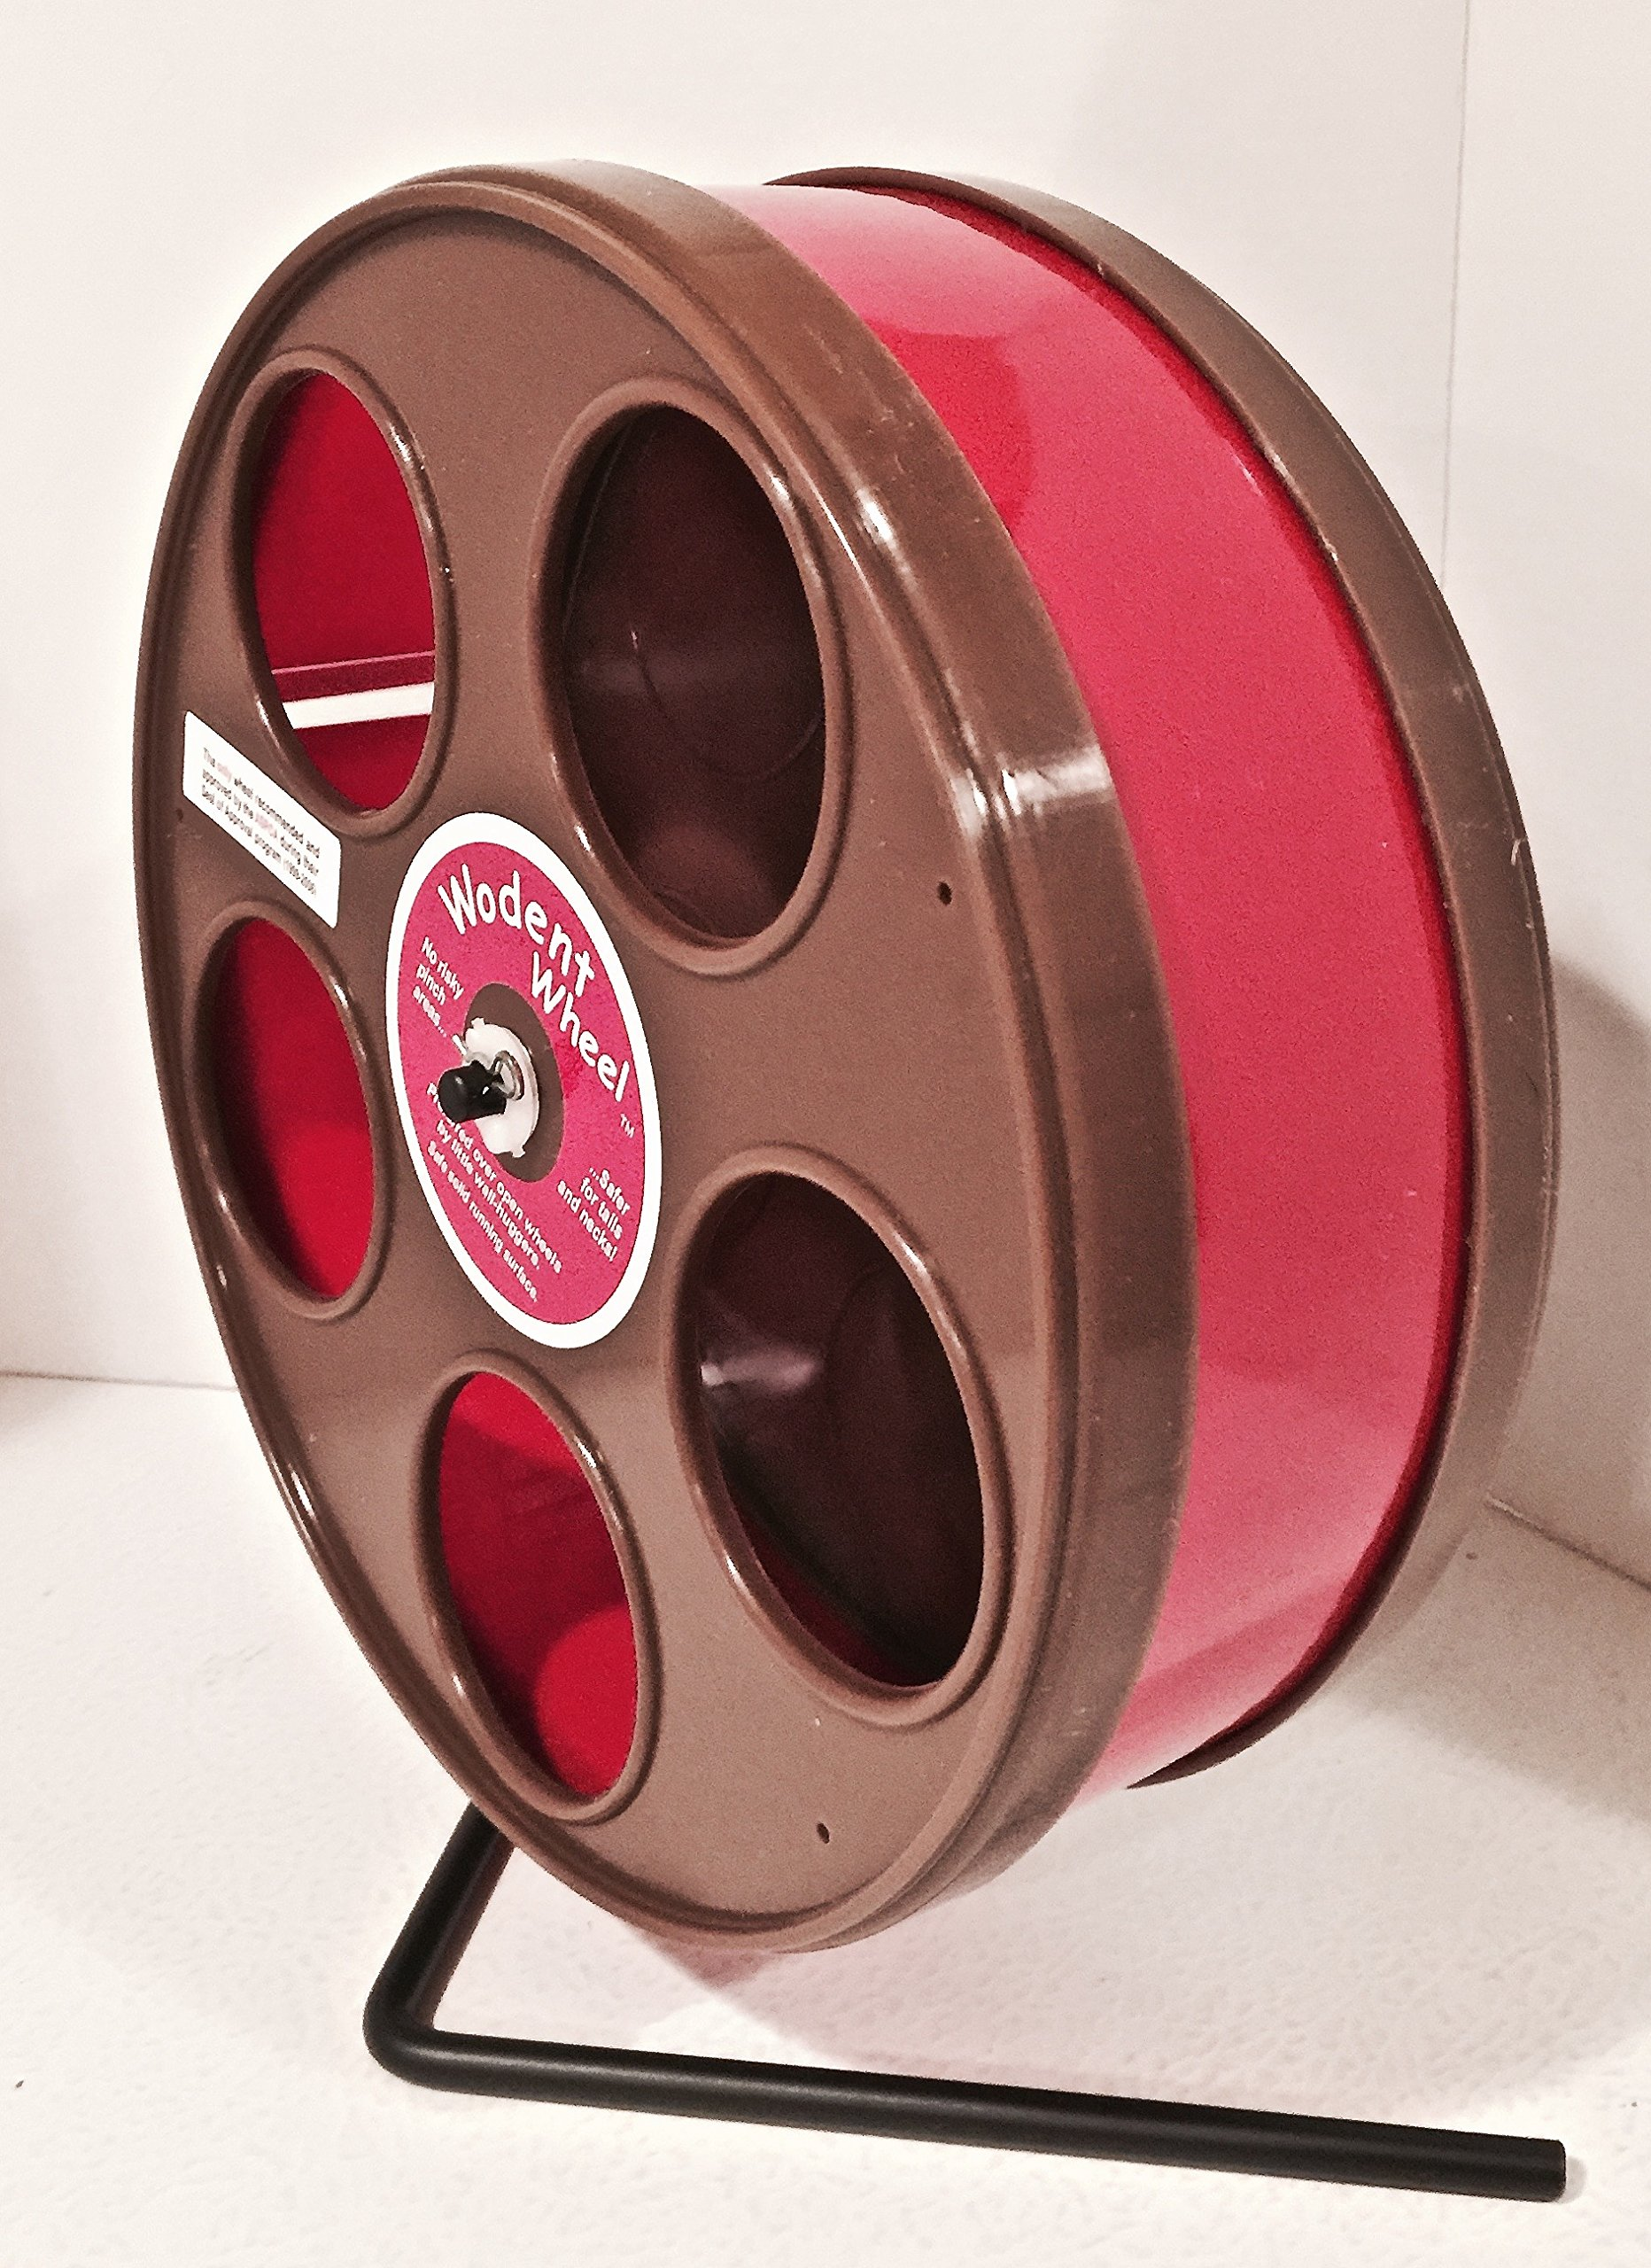 SUGAR GLIDER/HAMSTER WODENT WHEEL 8'' DIAMETER BROWN WITH RED TRACK